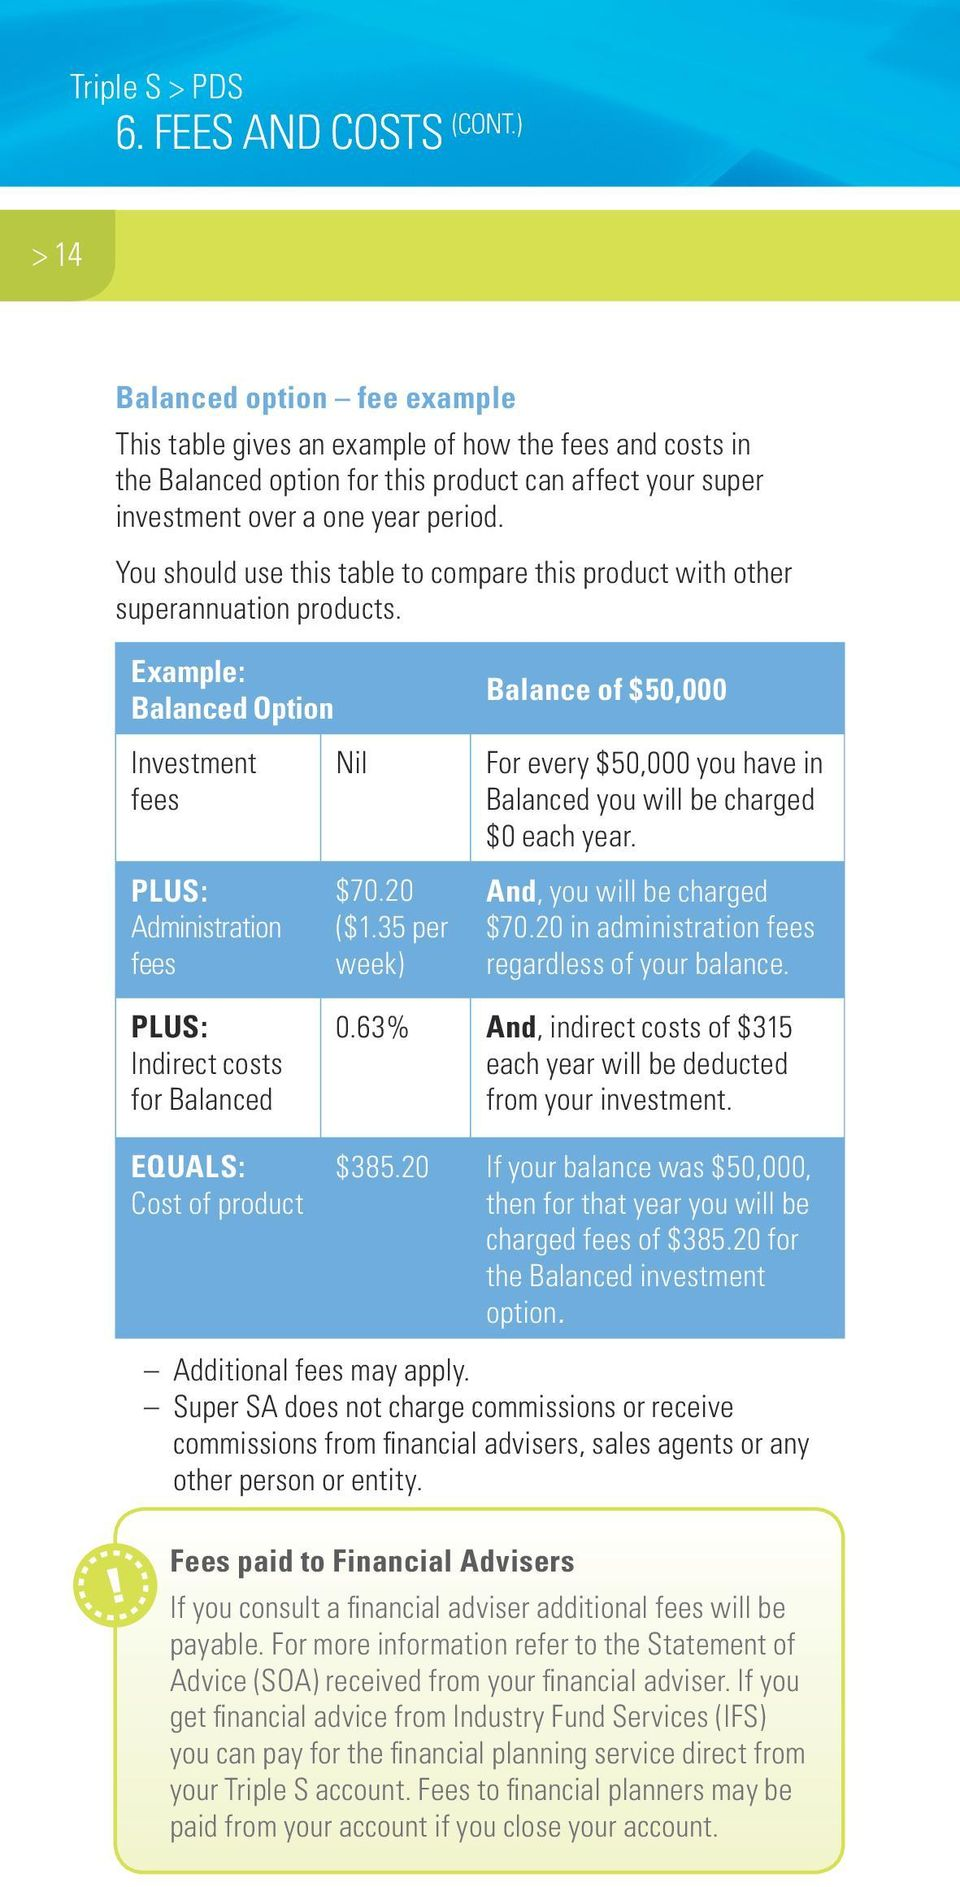 You should use this table to compare this product with other superannuation products. Example: Balanced Option Balance of $50,000 Investment fees PLUS: Administration fees Nil $70.20 ($1.